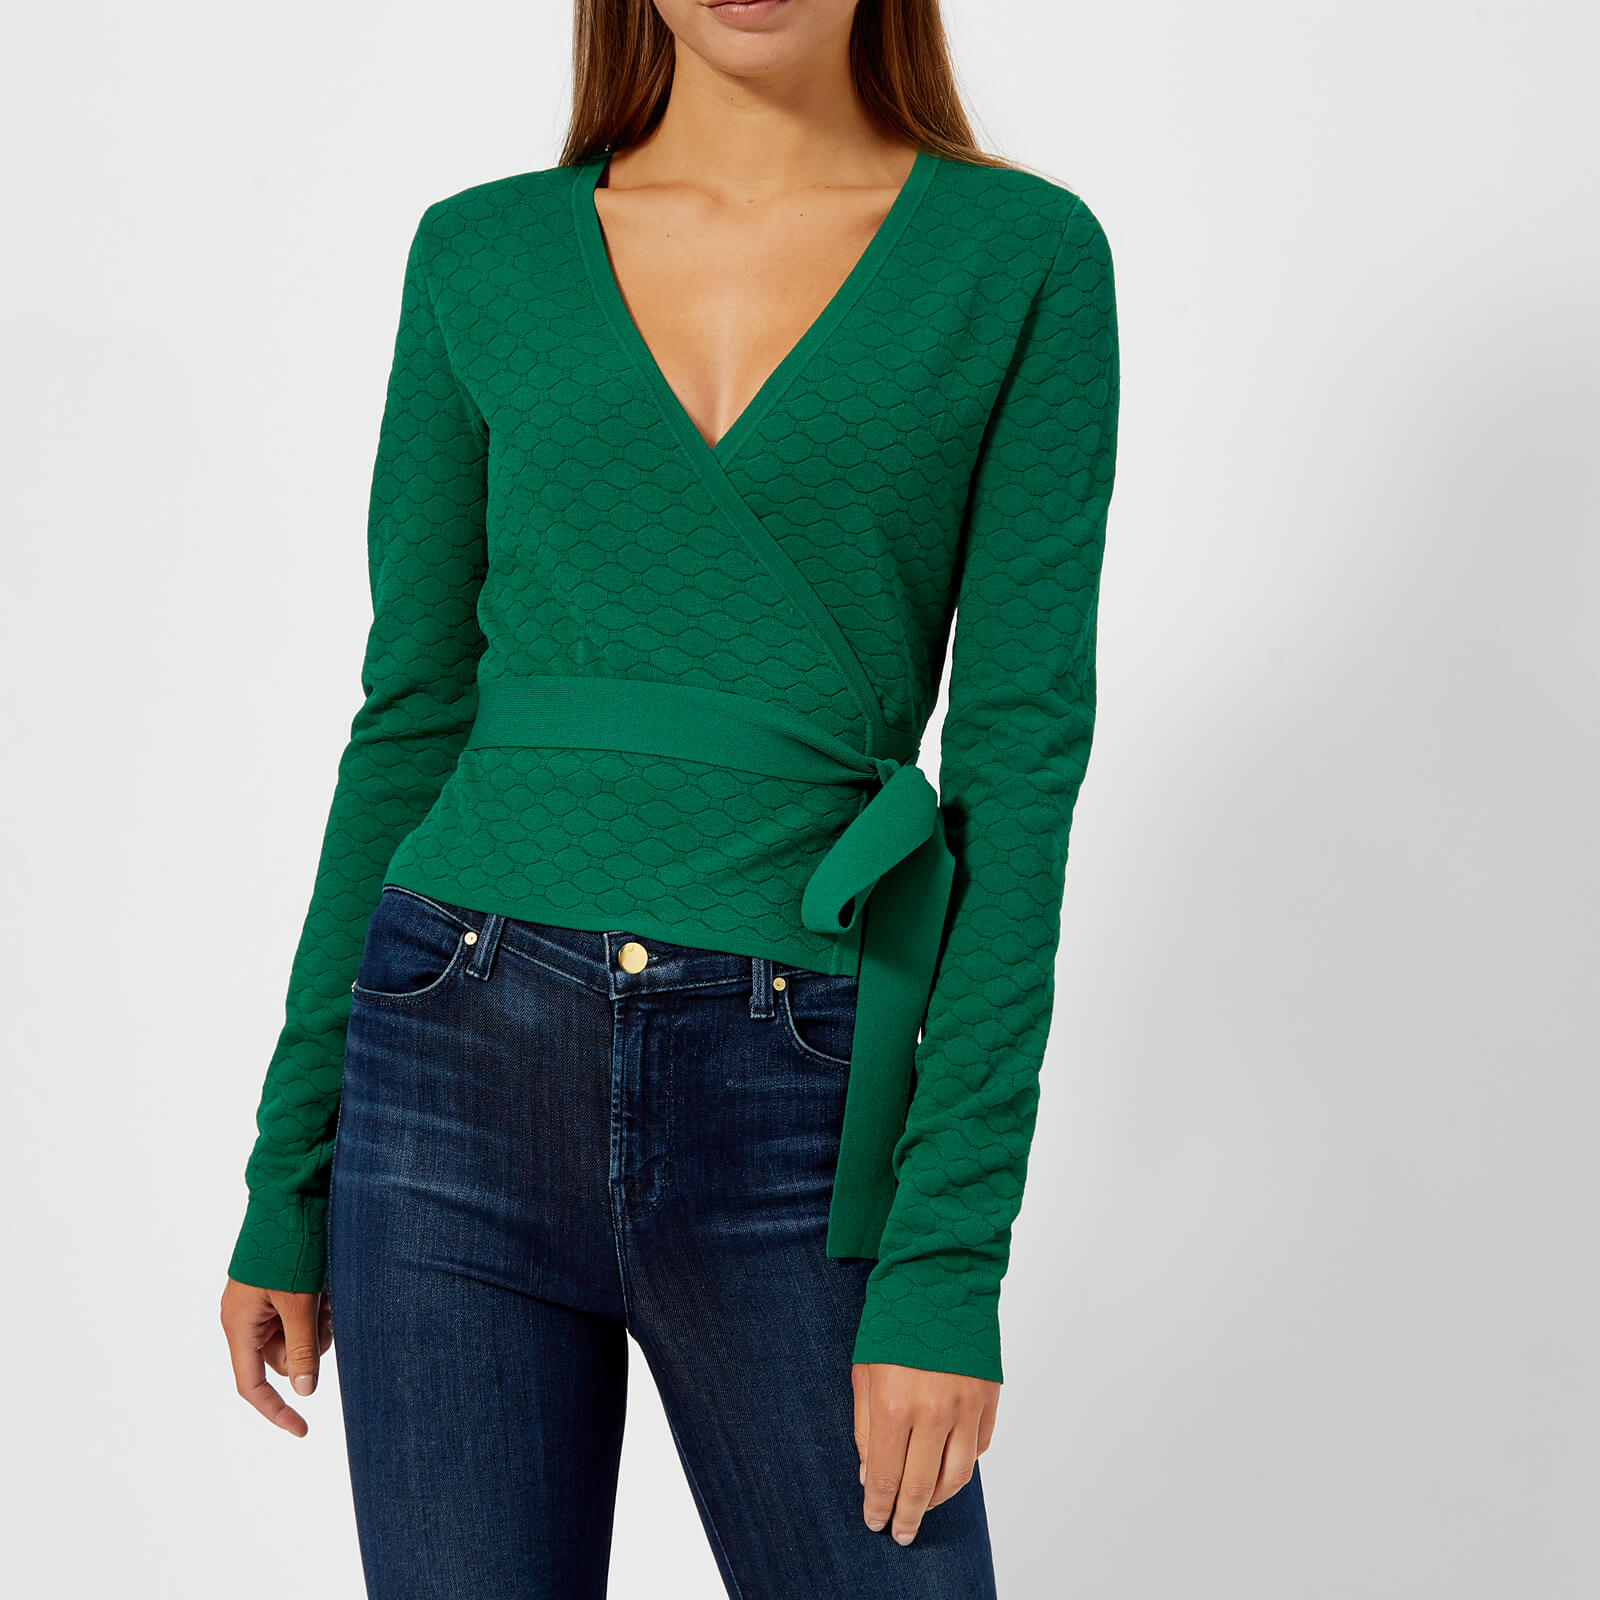 5c6a7eb2bf23 Diane von Furstenberg Women s Long Sleeve Wrap Sweater - Pine - Free UK  Delivery over £50